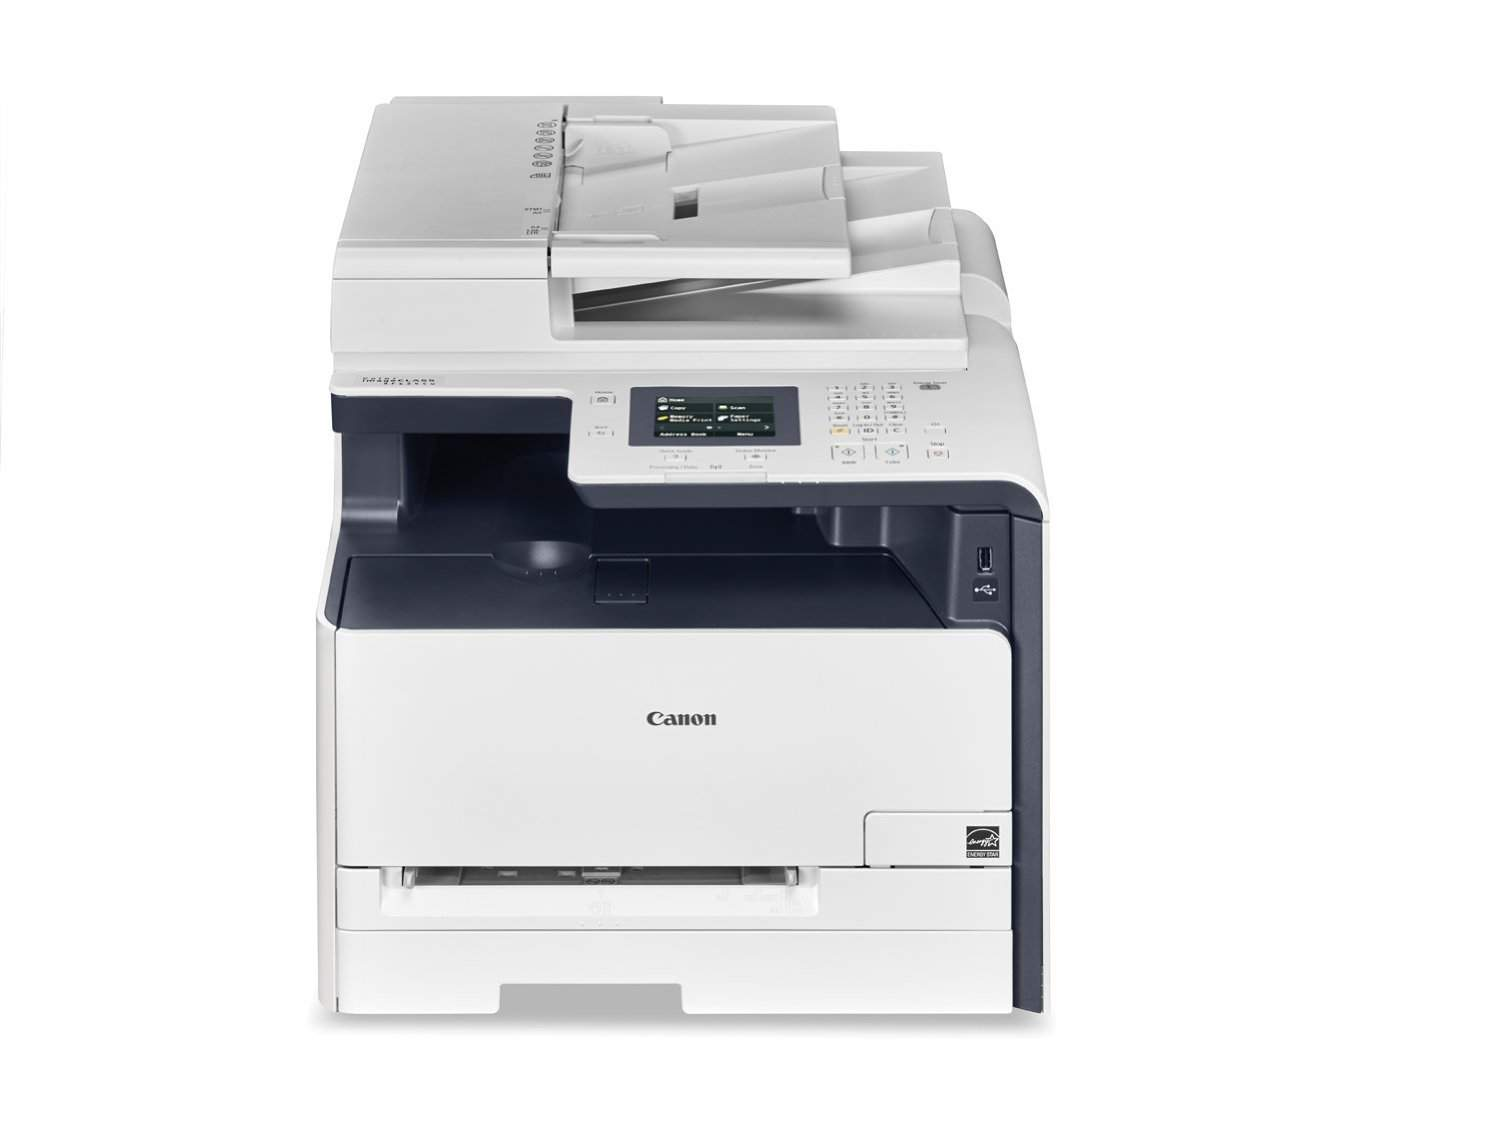 amazon color printer